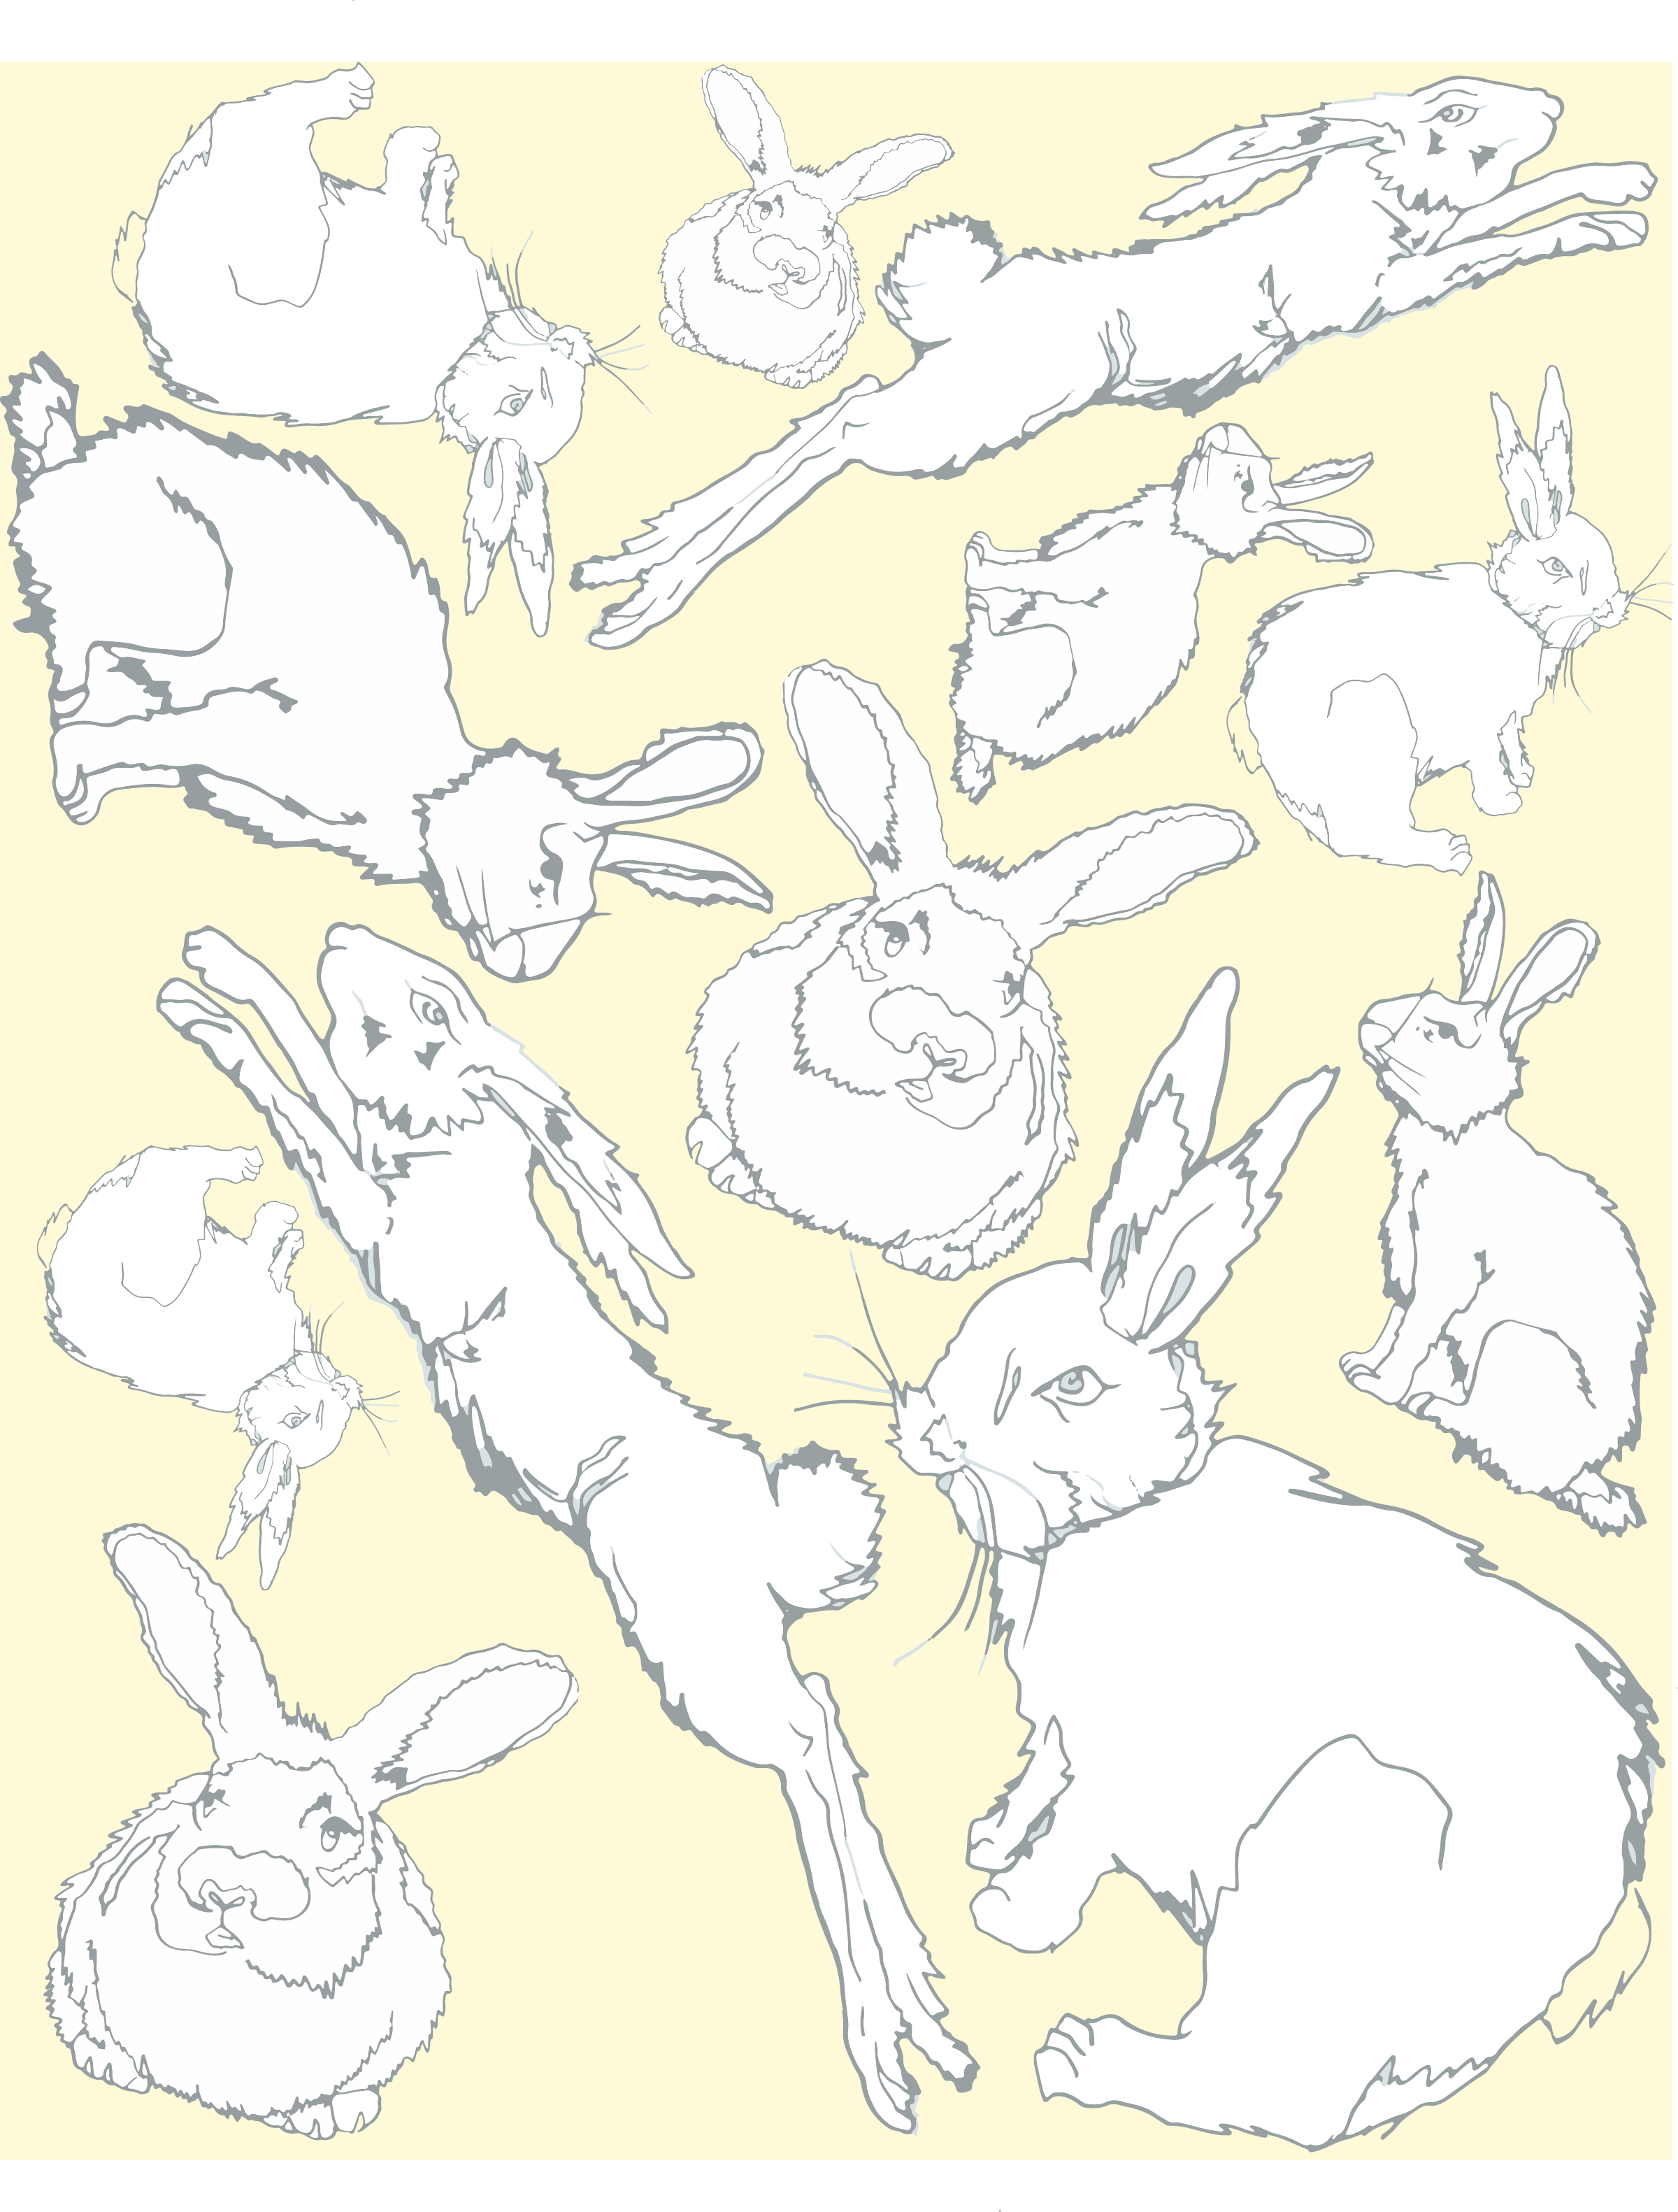 Illustrated rabbits inspired from a children's book to create a repeat print for childrens-wear.